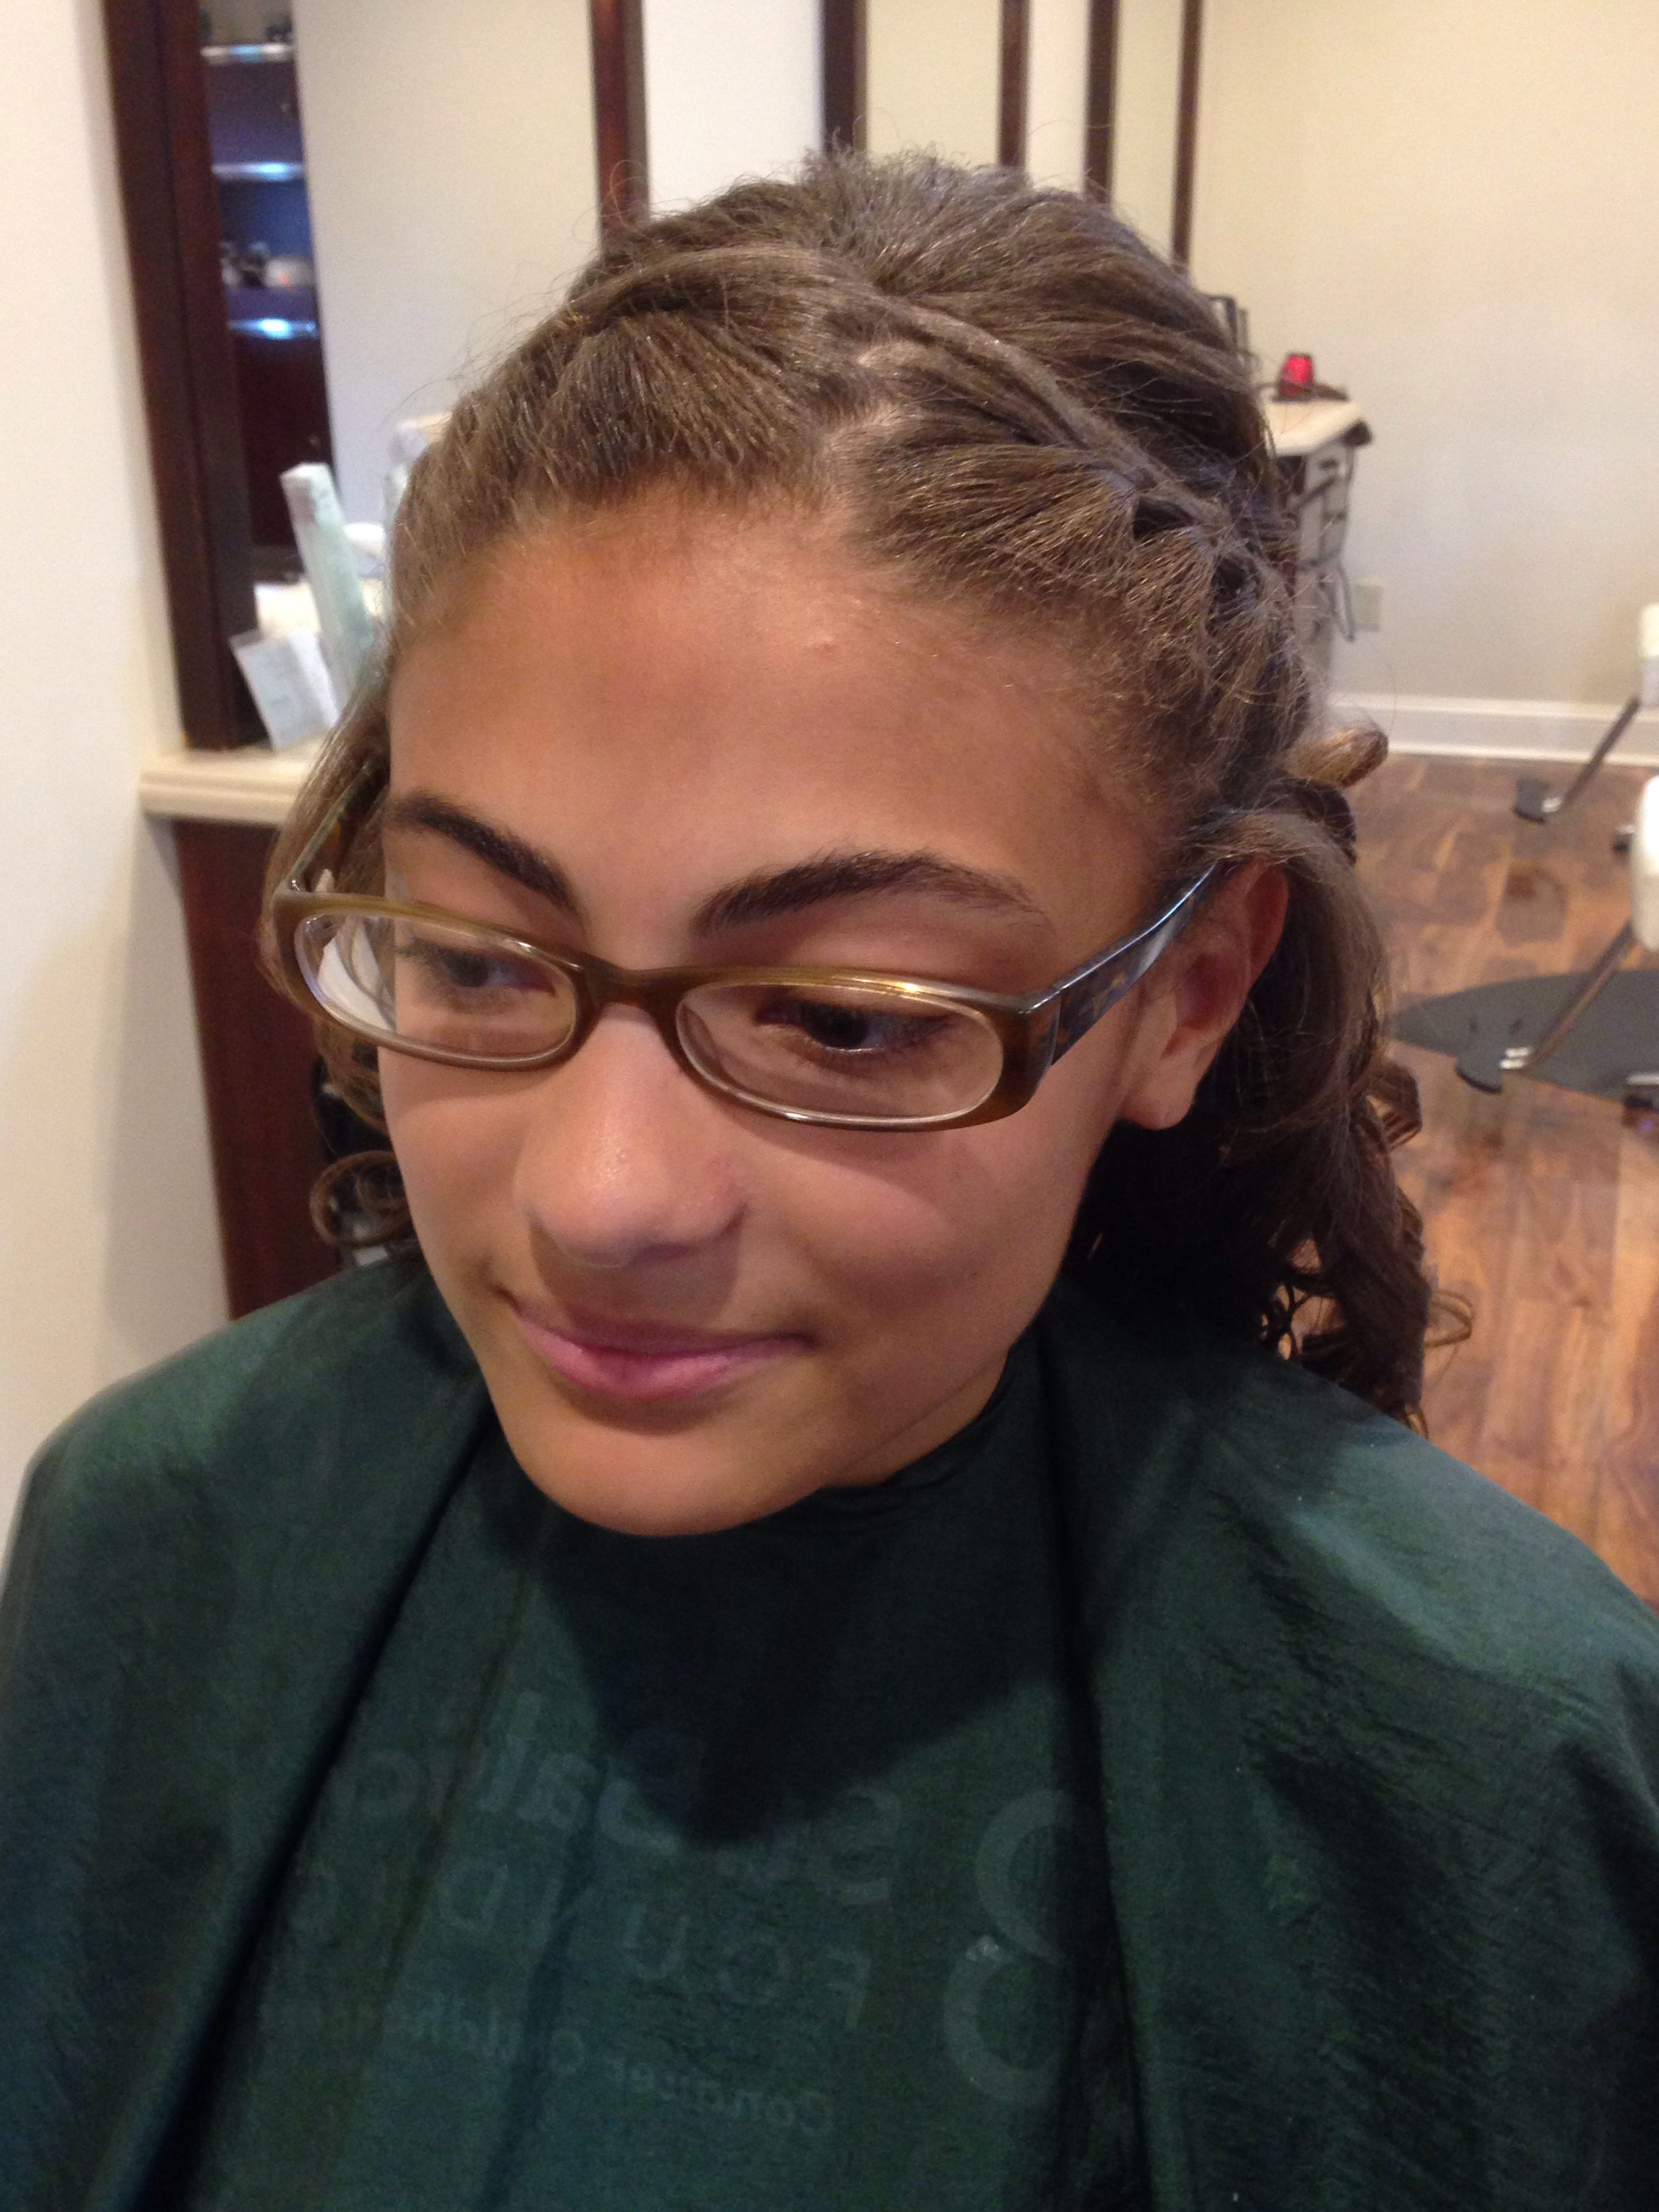 Up do for eighth grade dinner dance braid and curls hair done by